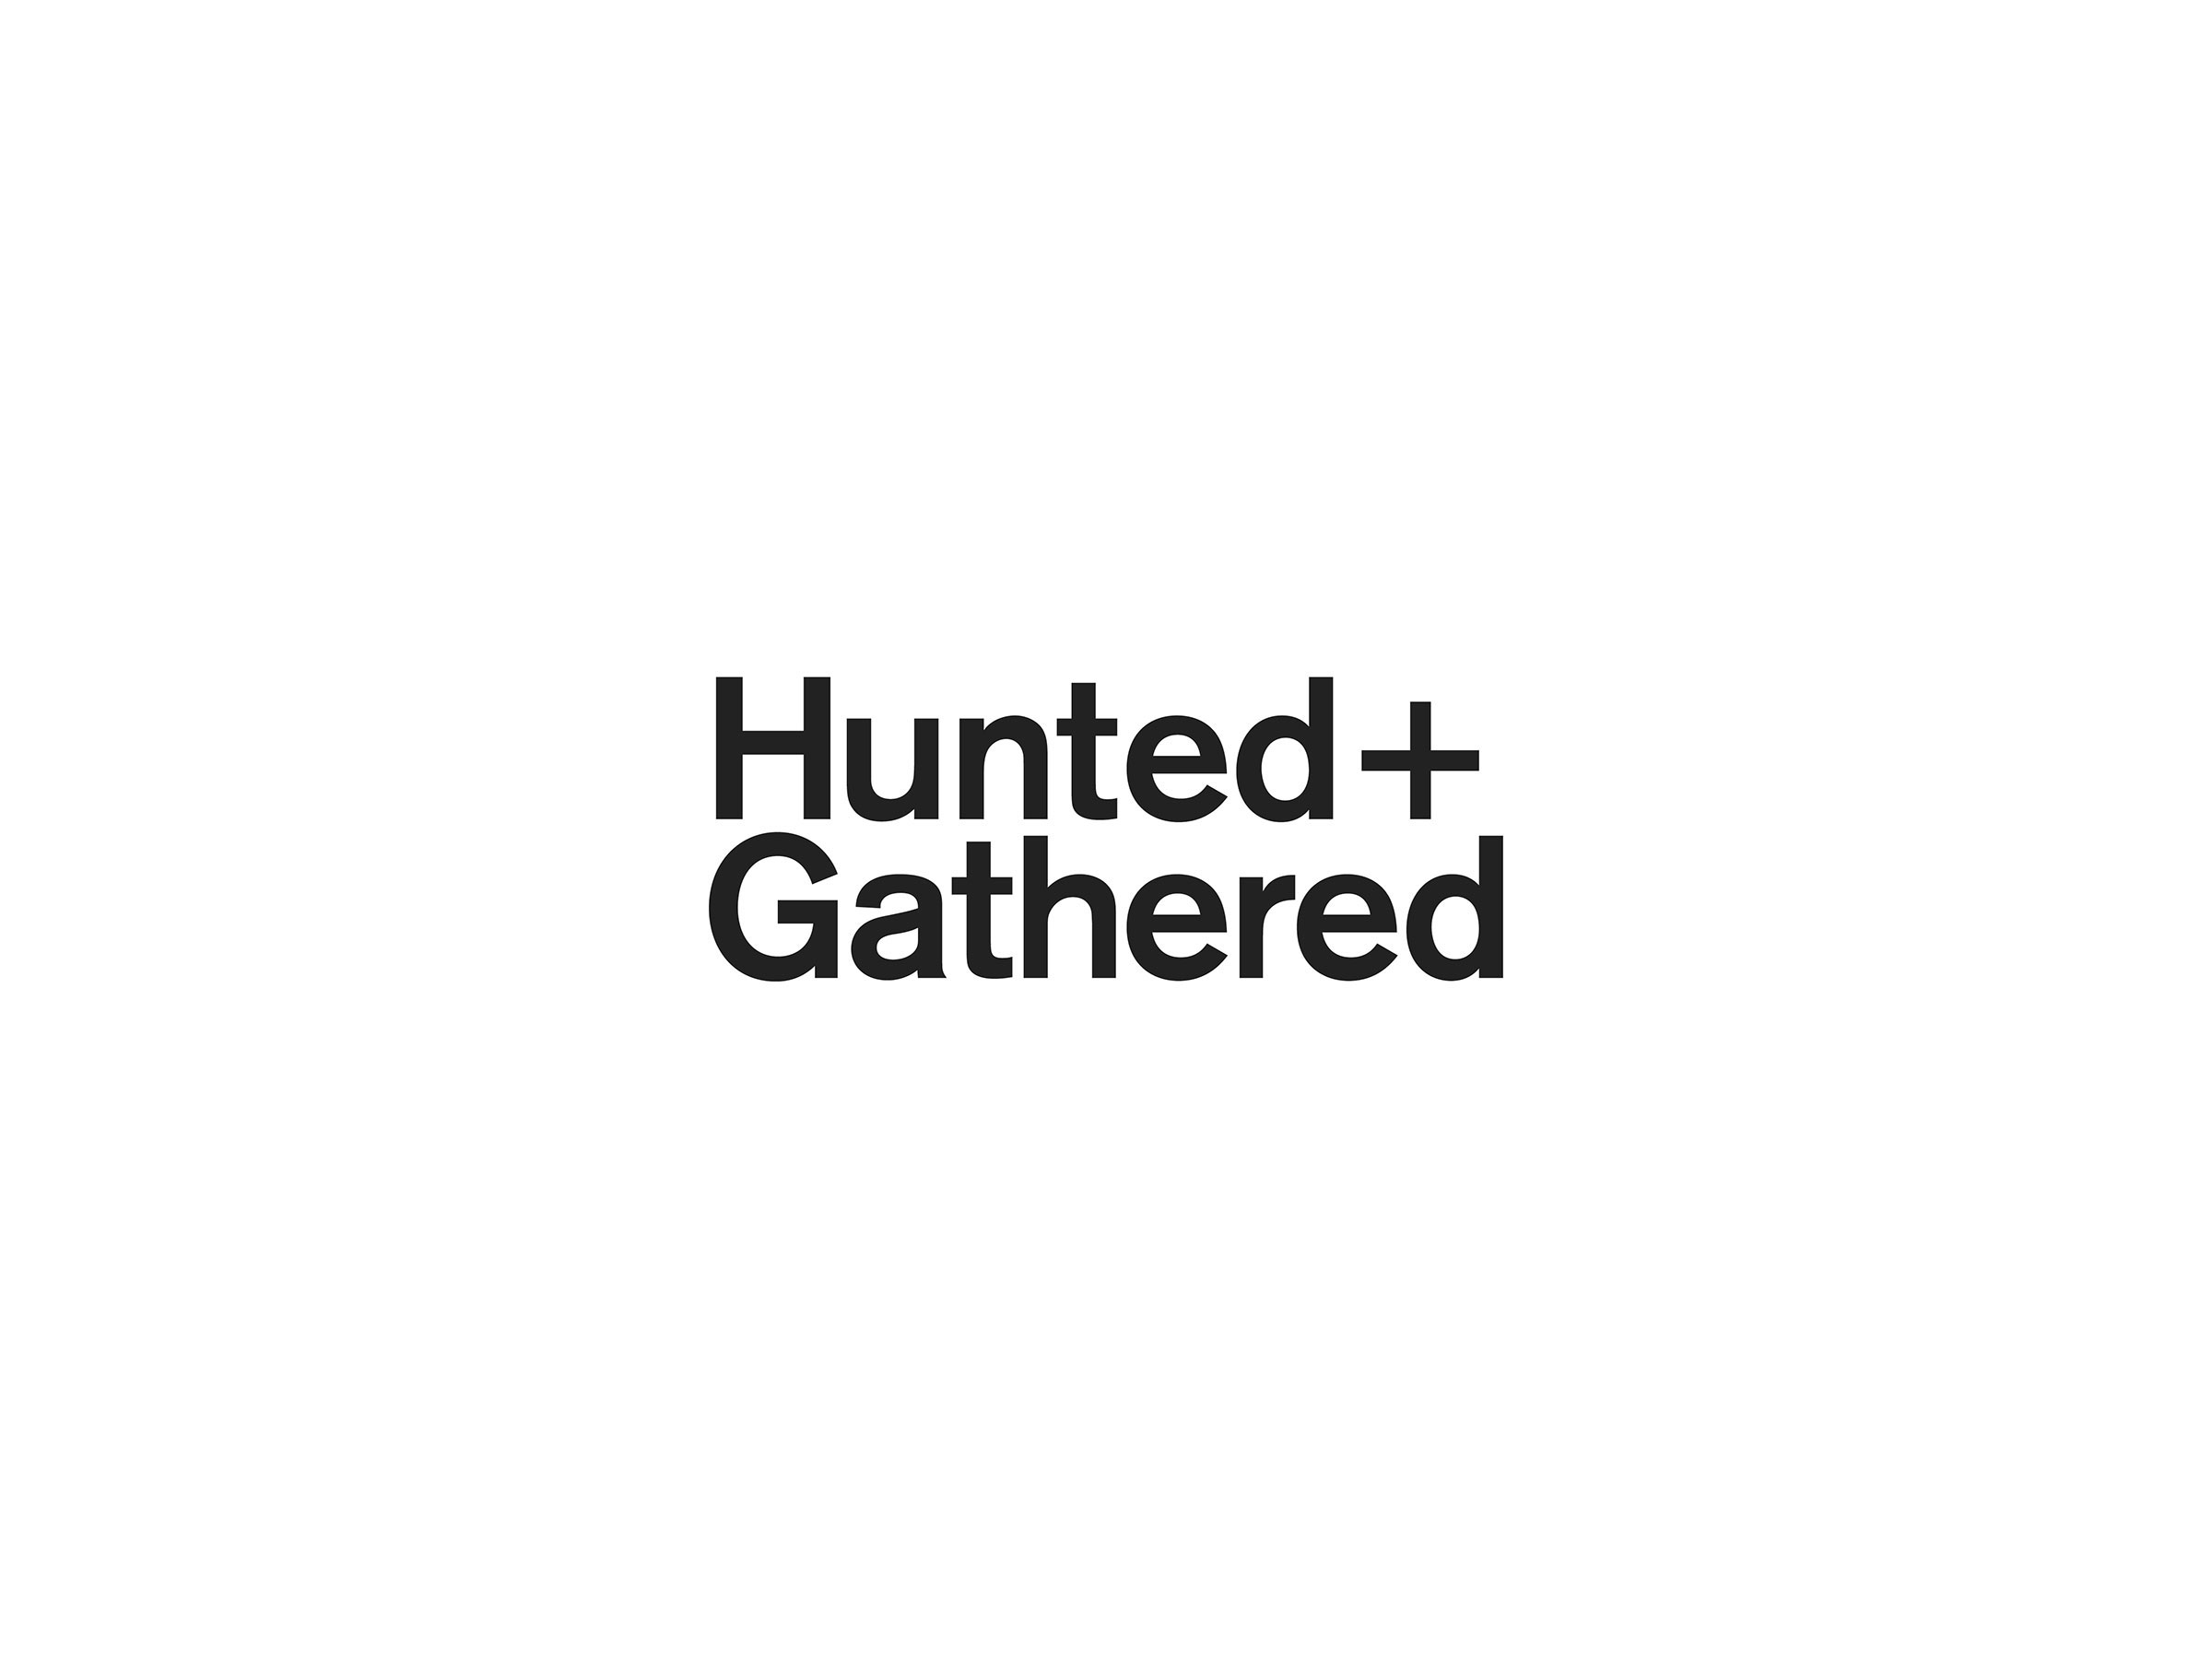 Hunted + Gathered